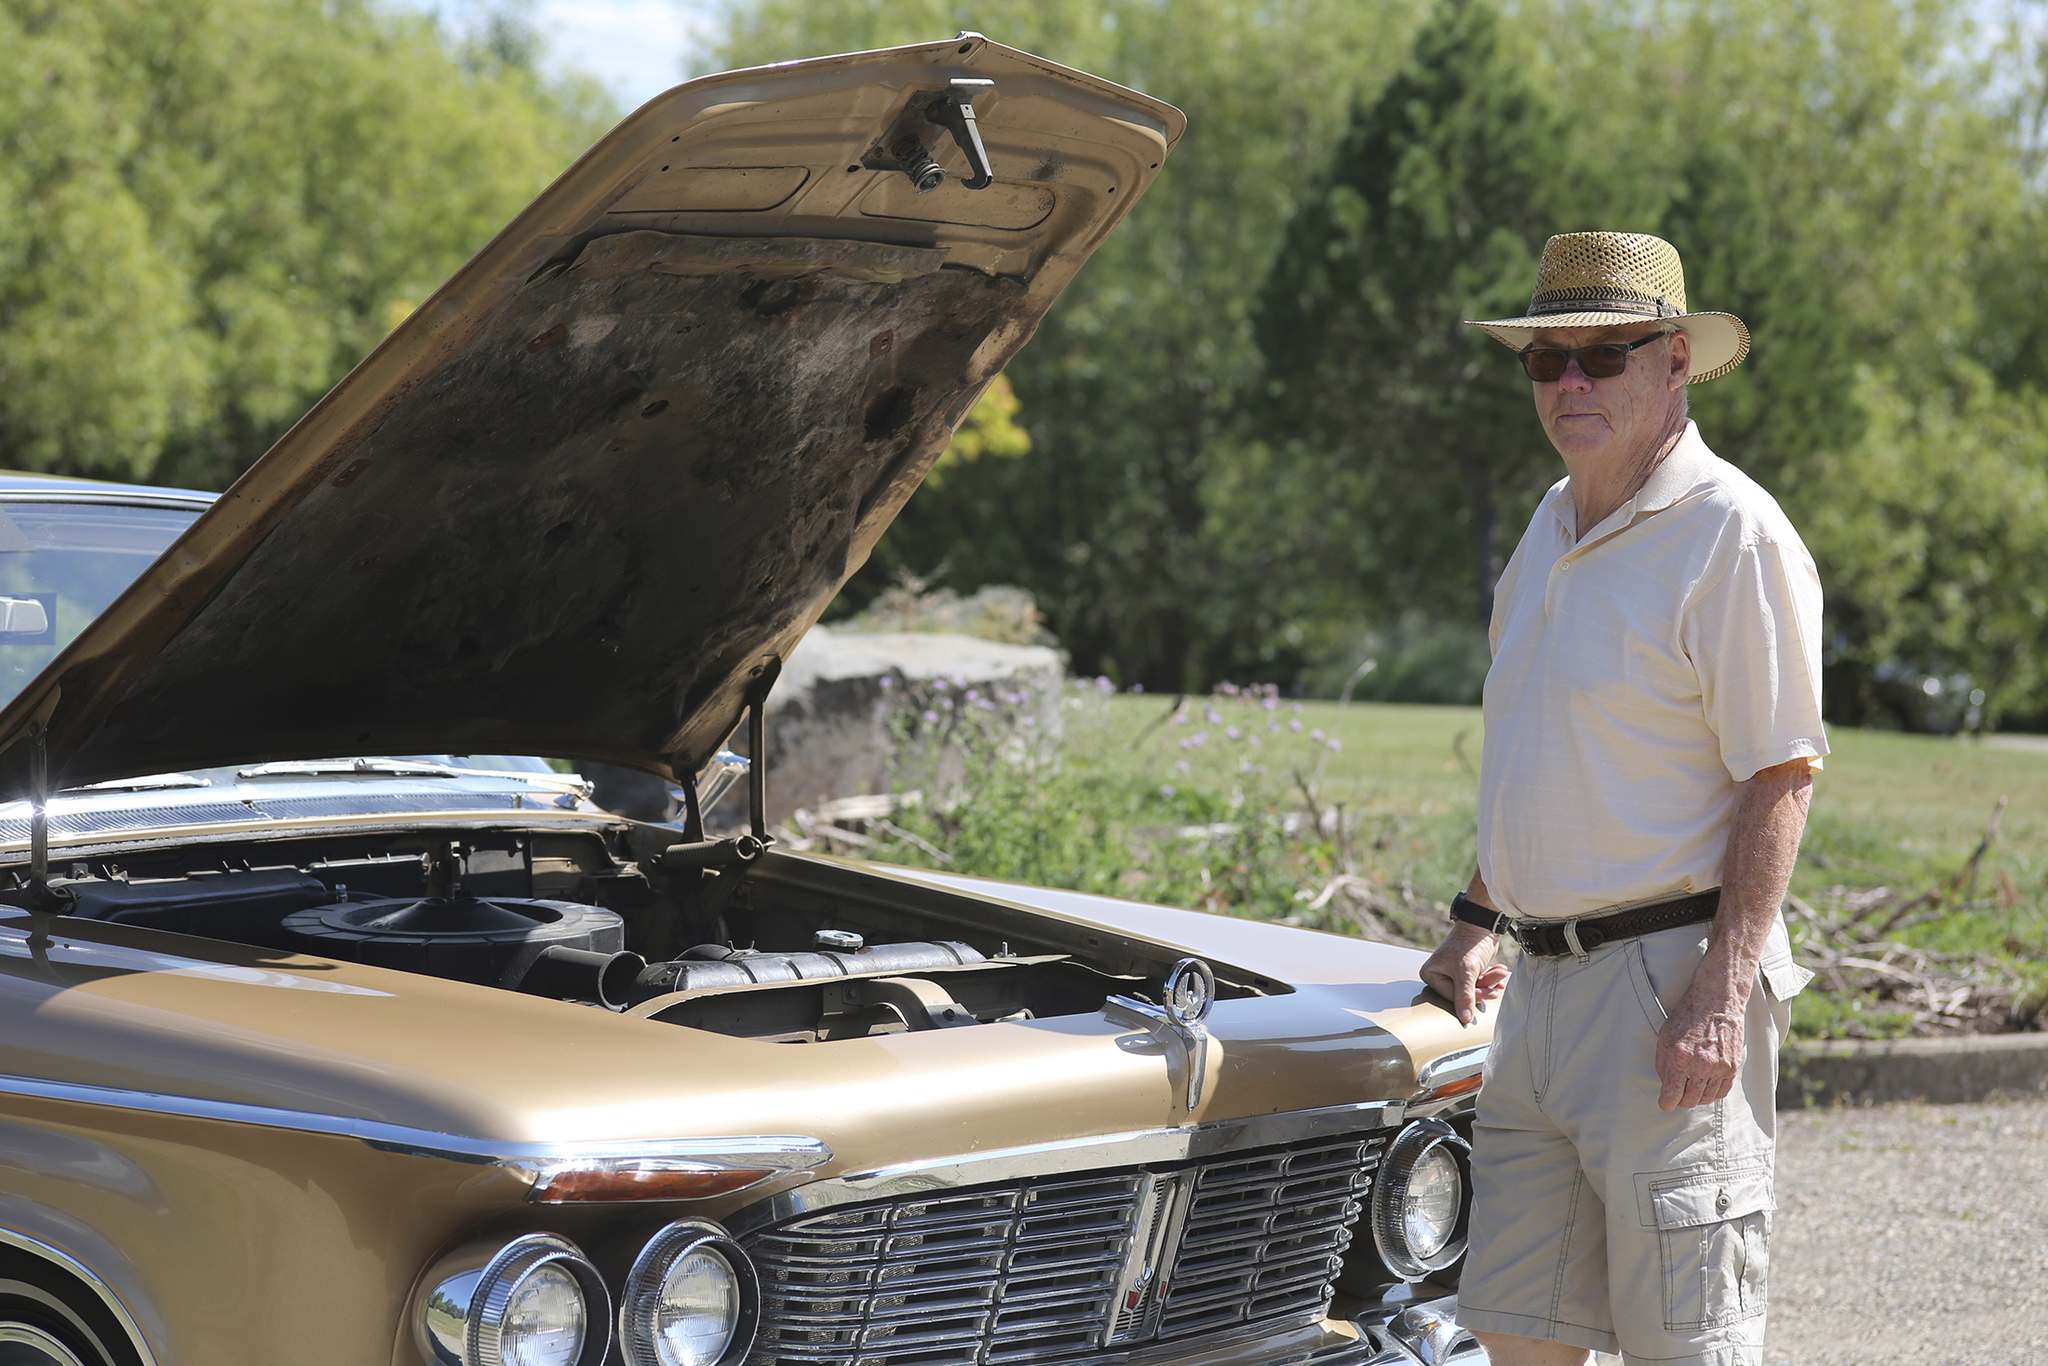 Reg Atkinson checks out the 413-cubic-inch engine that powers his 1963 Chrysler Imperial. (Kyle Darbyson/The Brandon Sun)